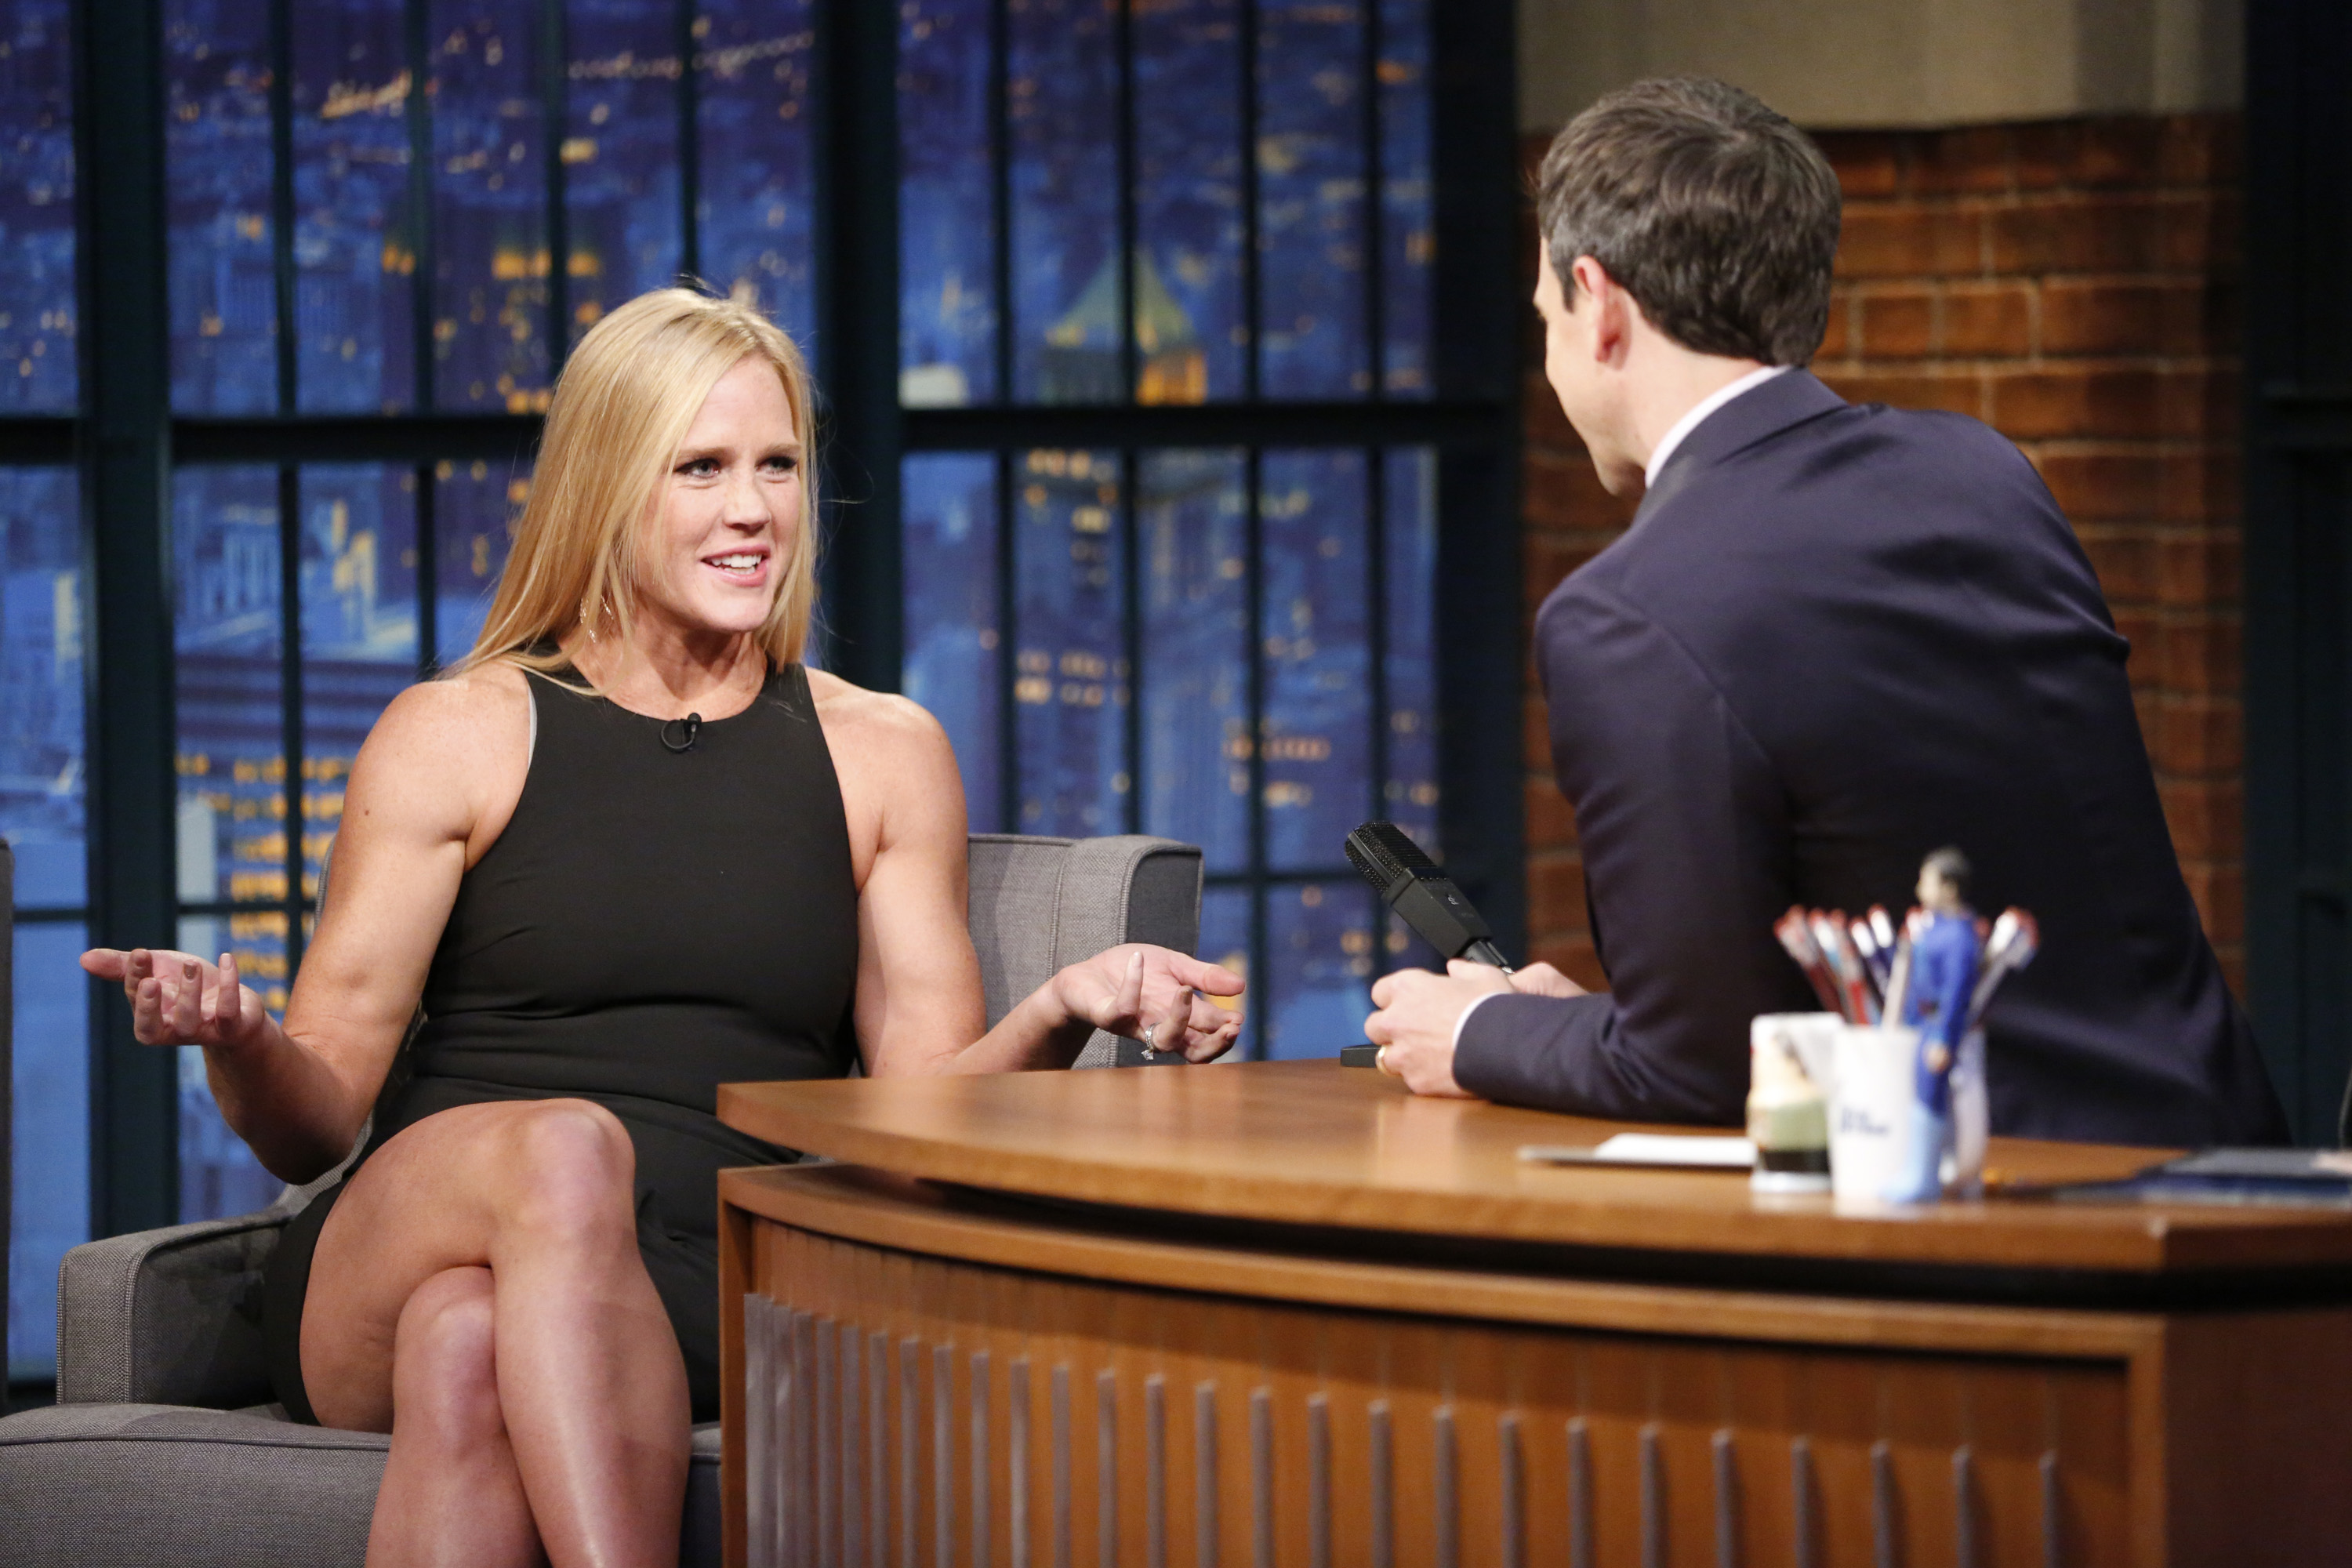 Pictured: (l-r) Holly Holm, UFC Women's Bantamweight Champion, during an interview with host Seth Meyers on November 18, 2015.